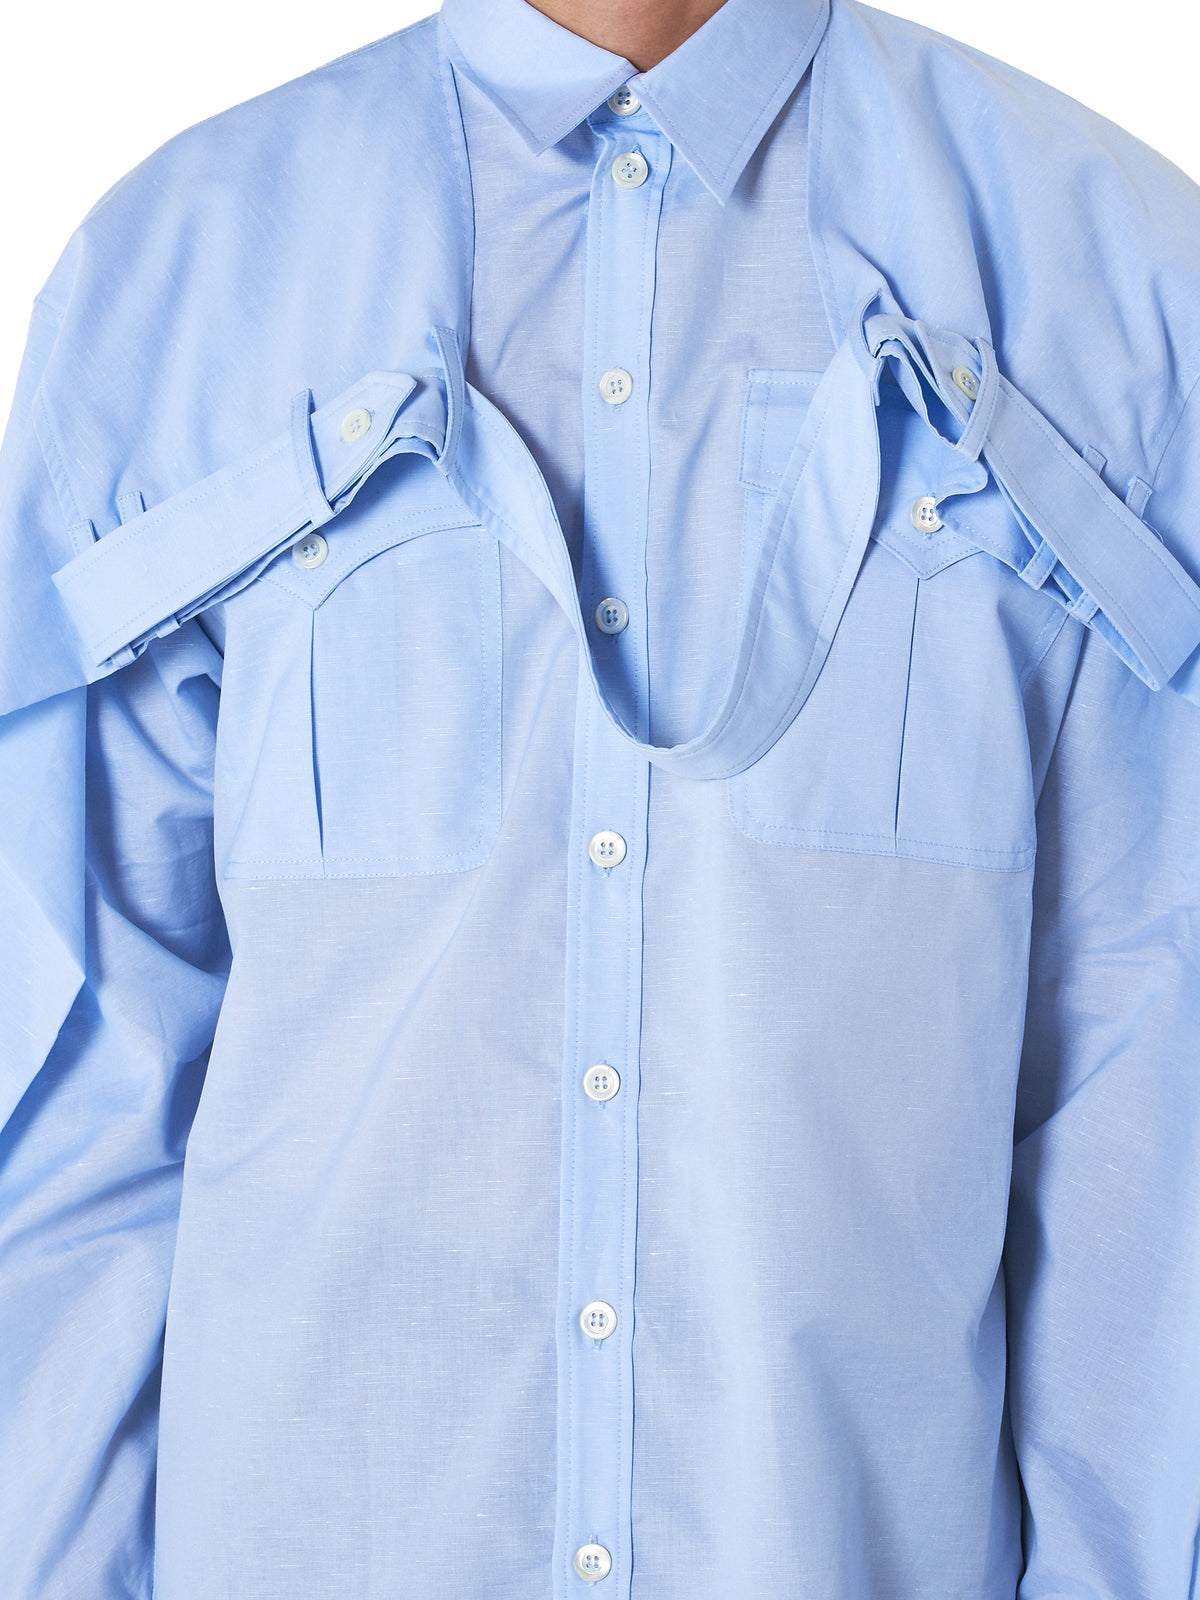 Y/Project Shirt - Hlorenzo Detail 2